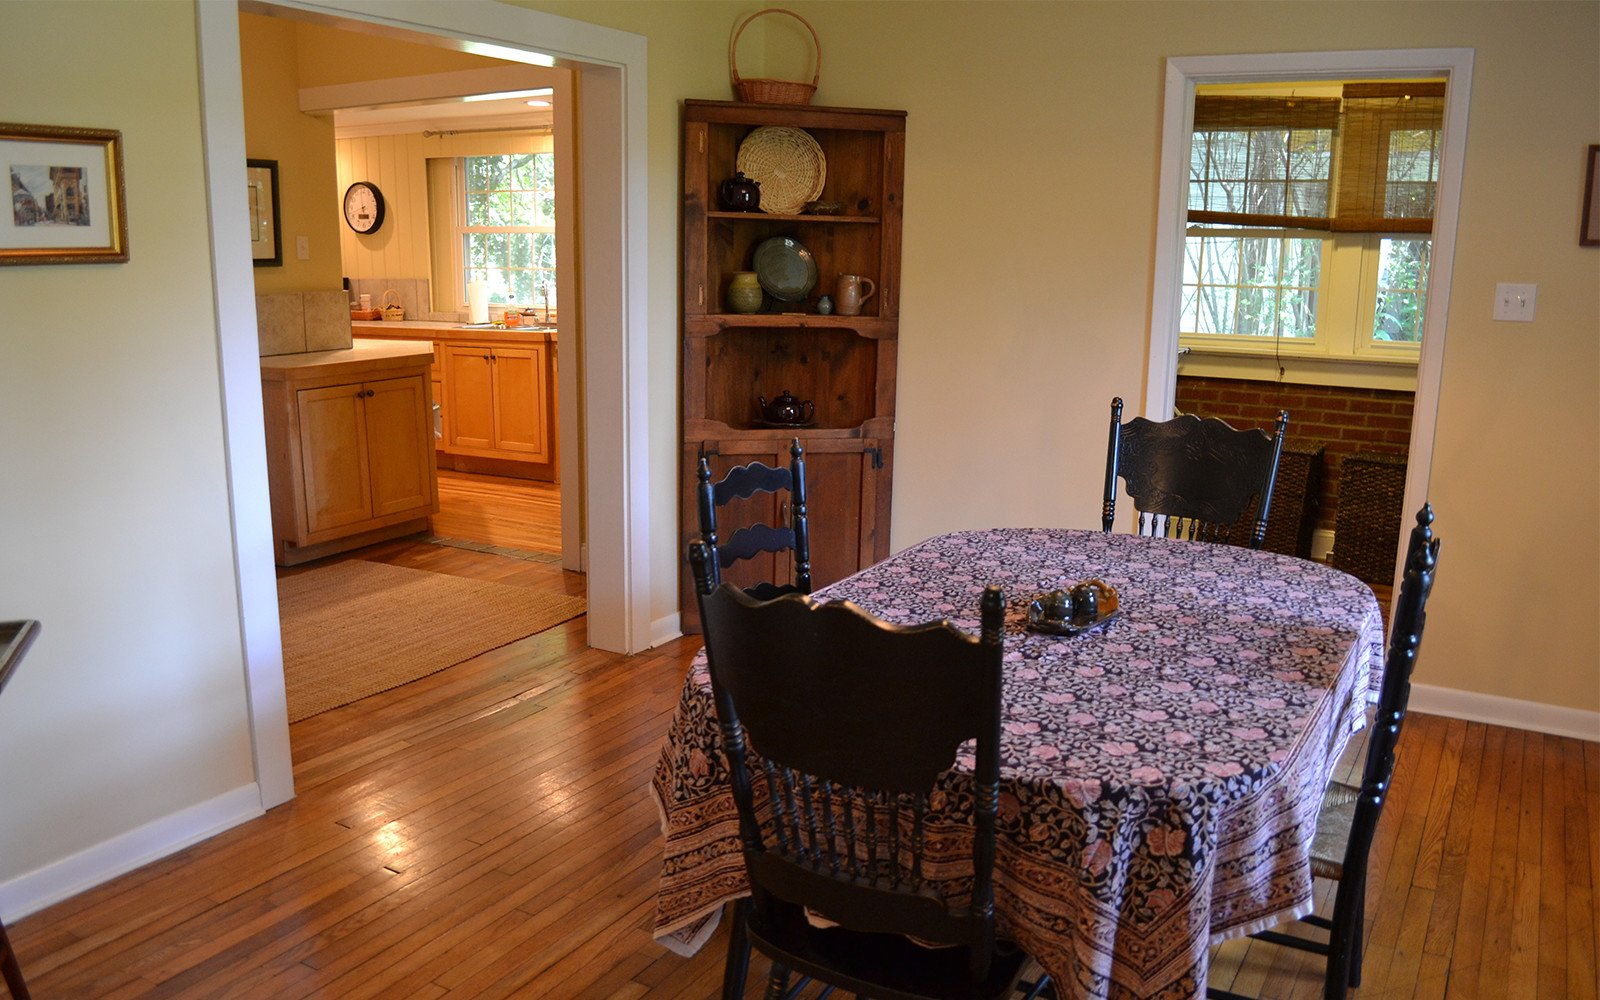 Franklin-Street-house-dining-room